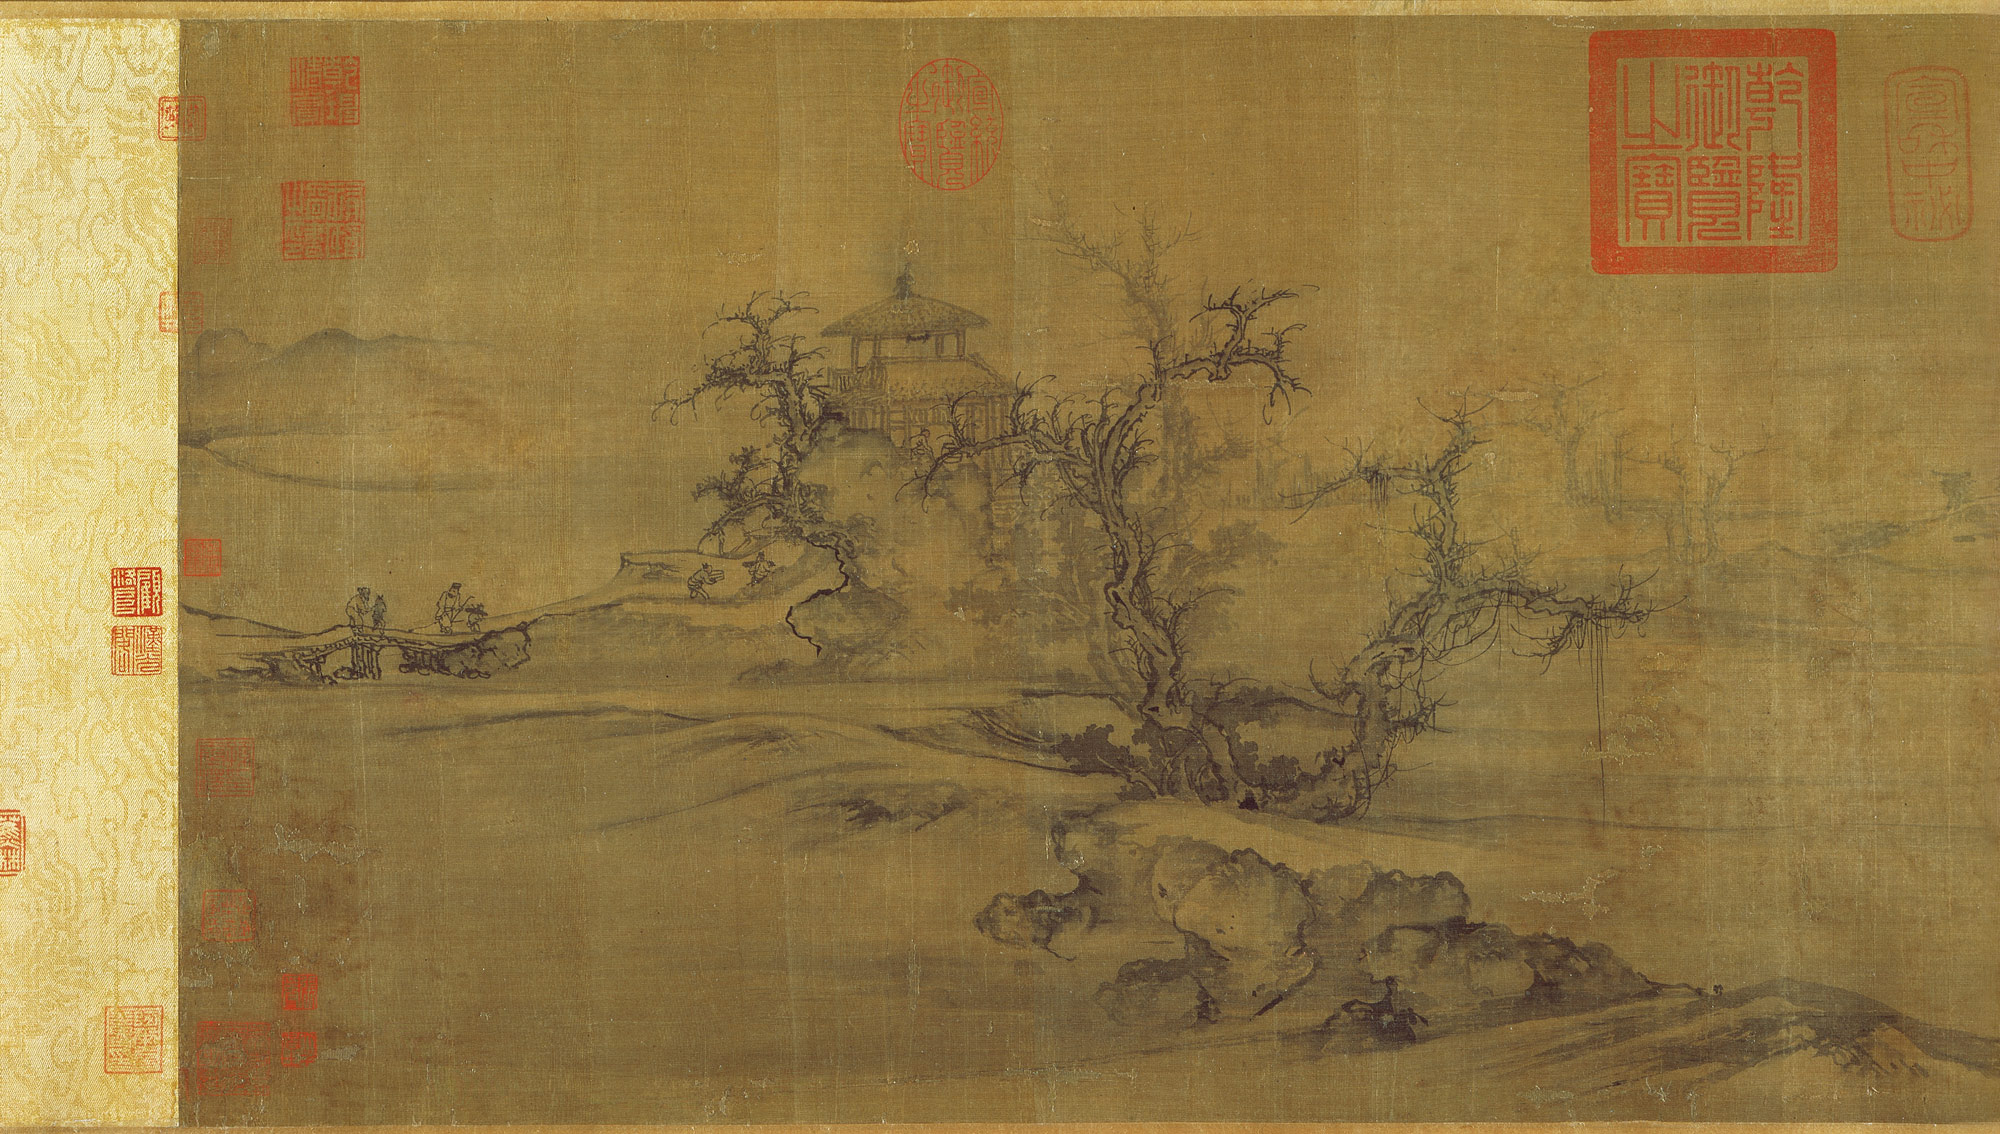 northern song dynasty essay heilbrunn timeline of old trees level distance